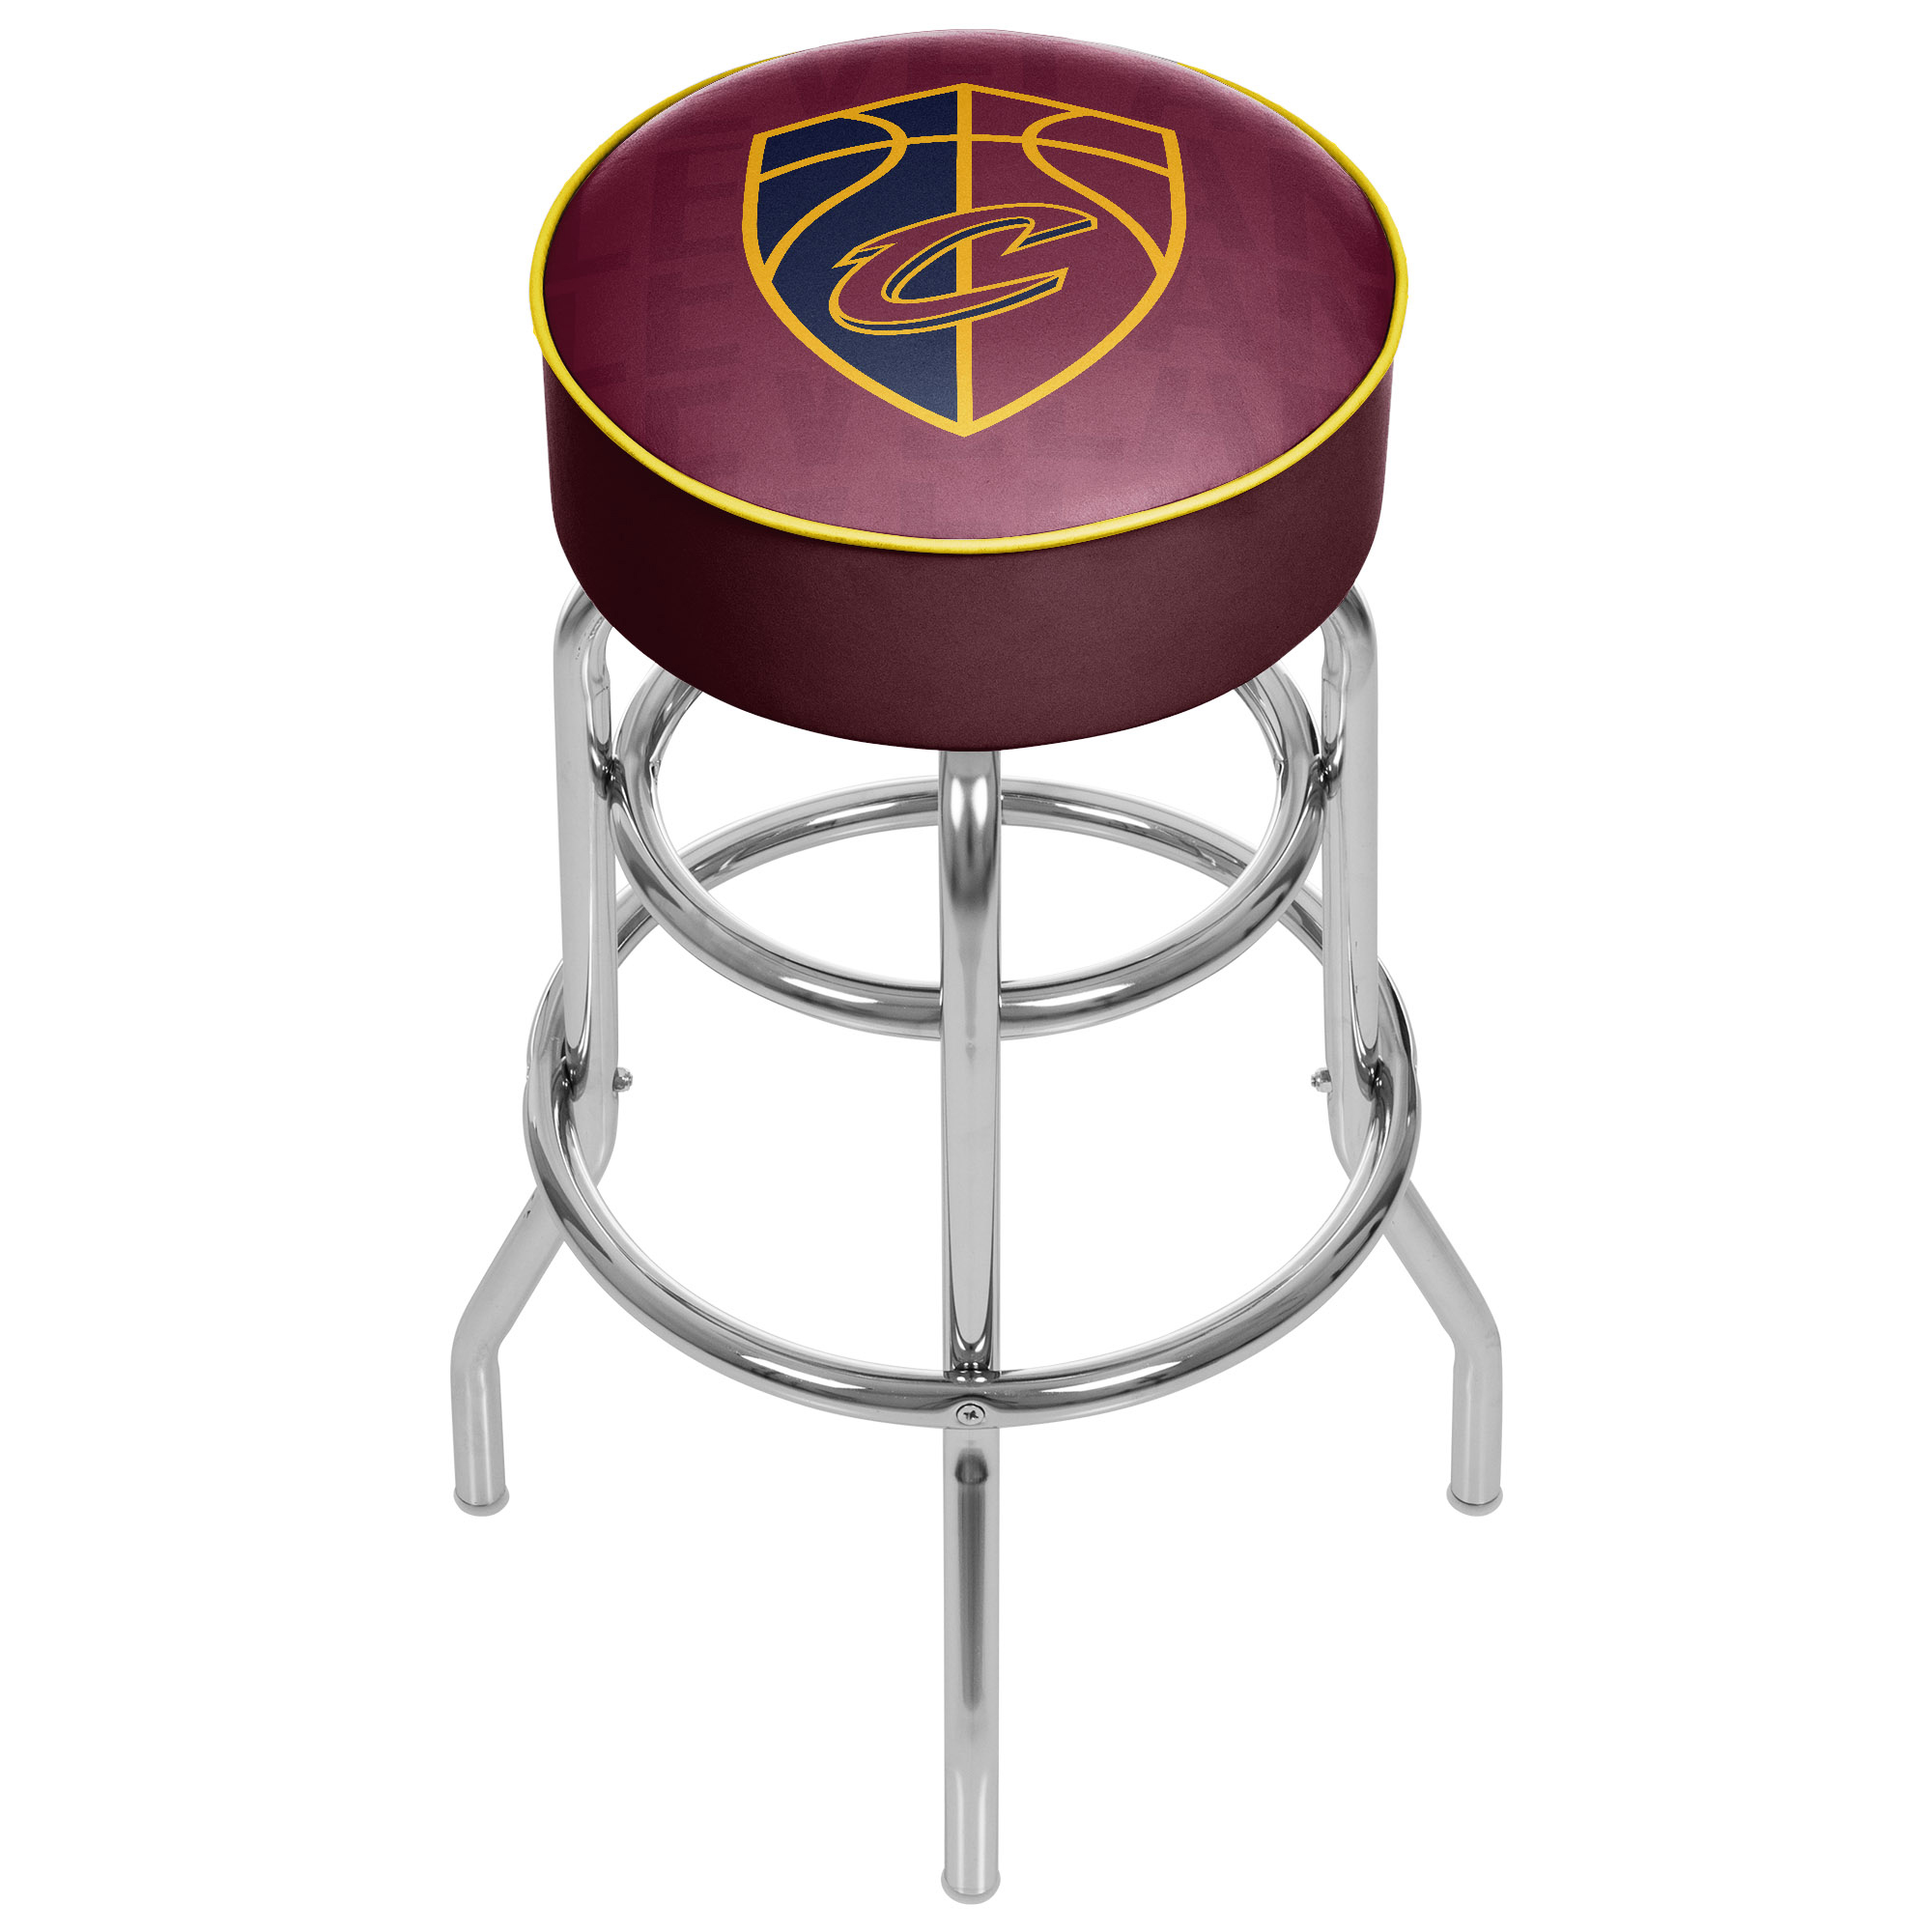 Image of Cleveland Cavaliers NBA Padded Swivel Bar Stool - City